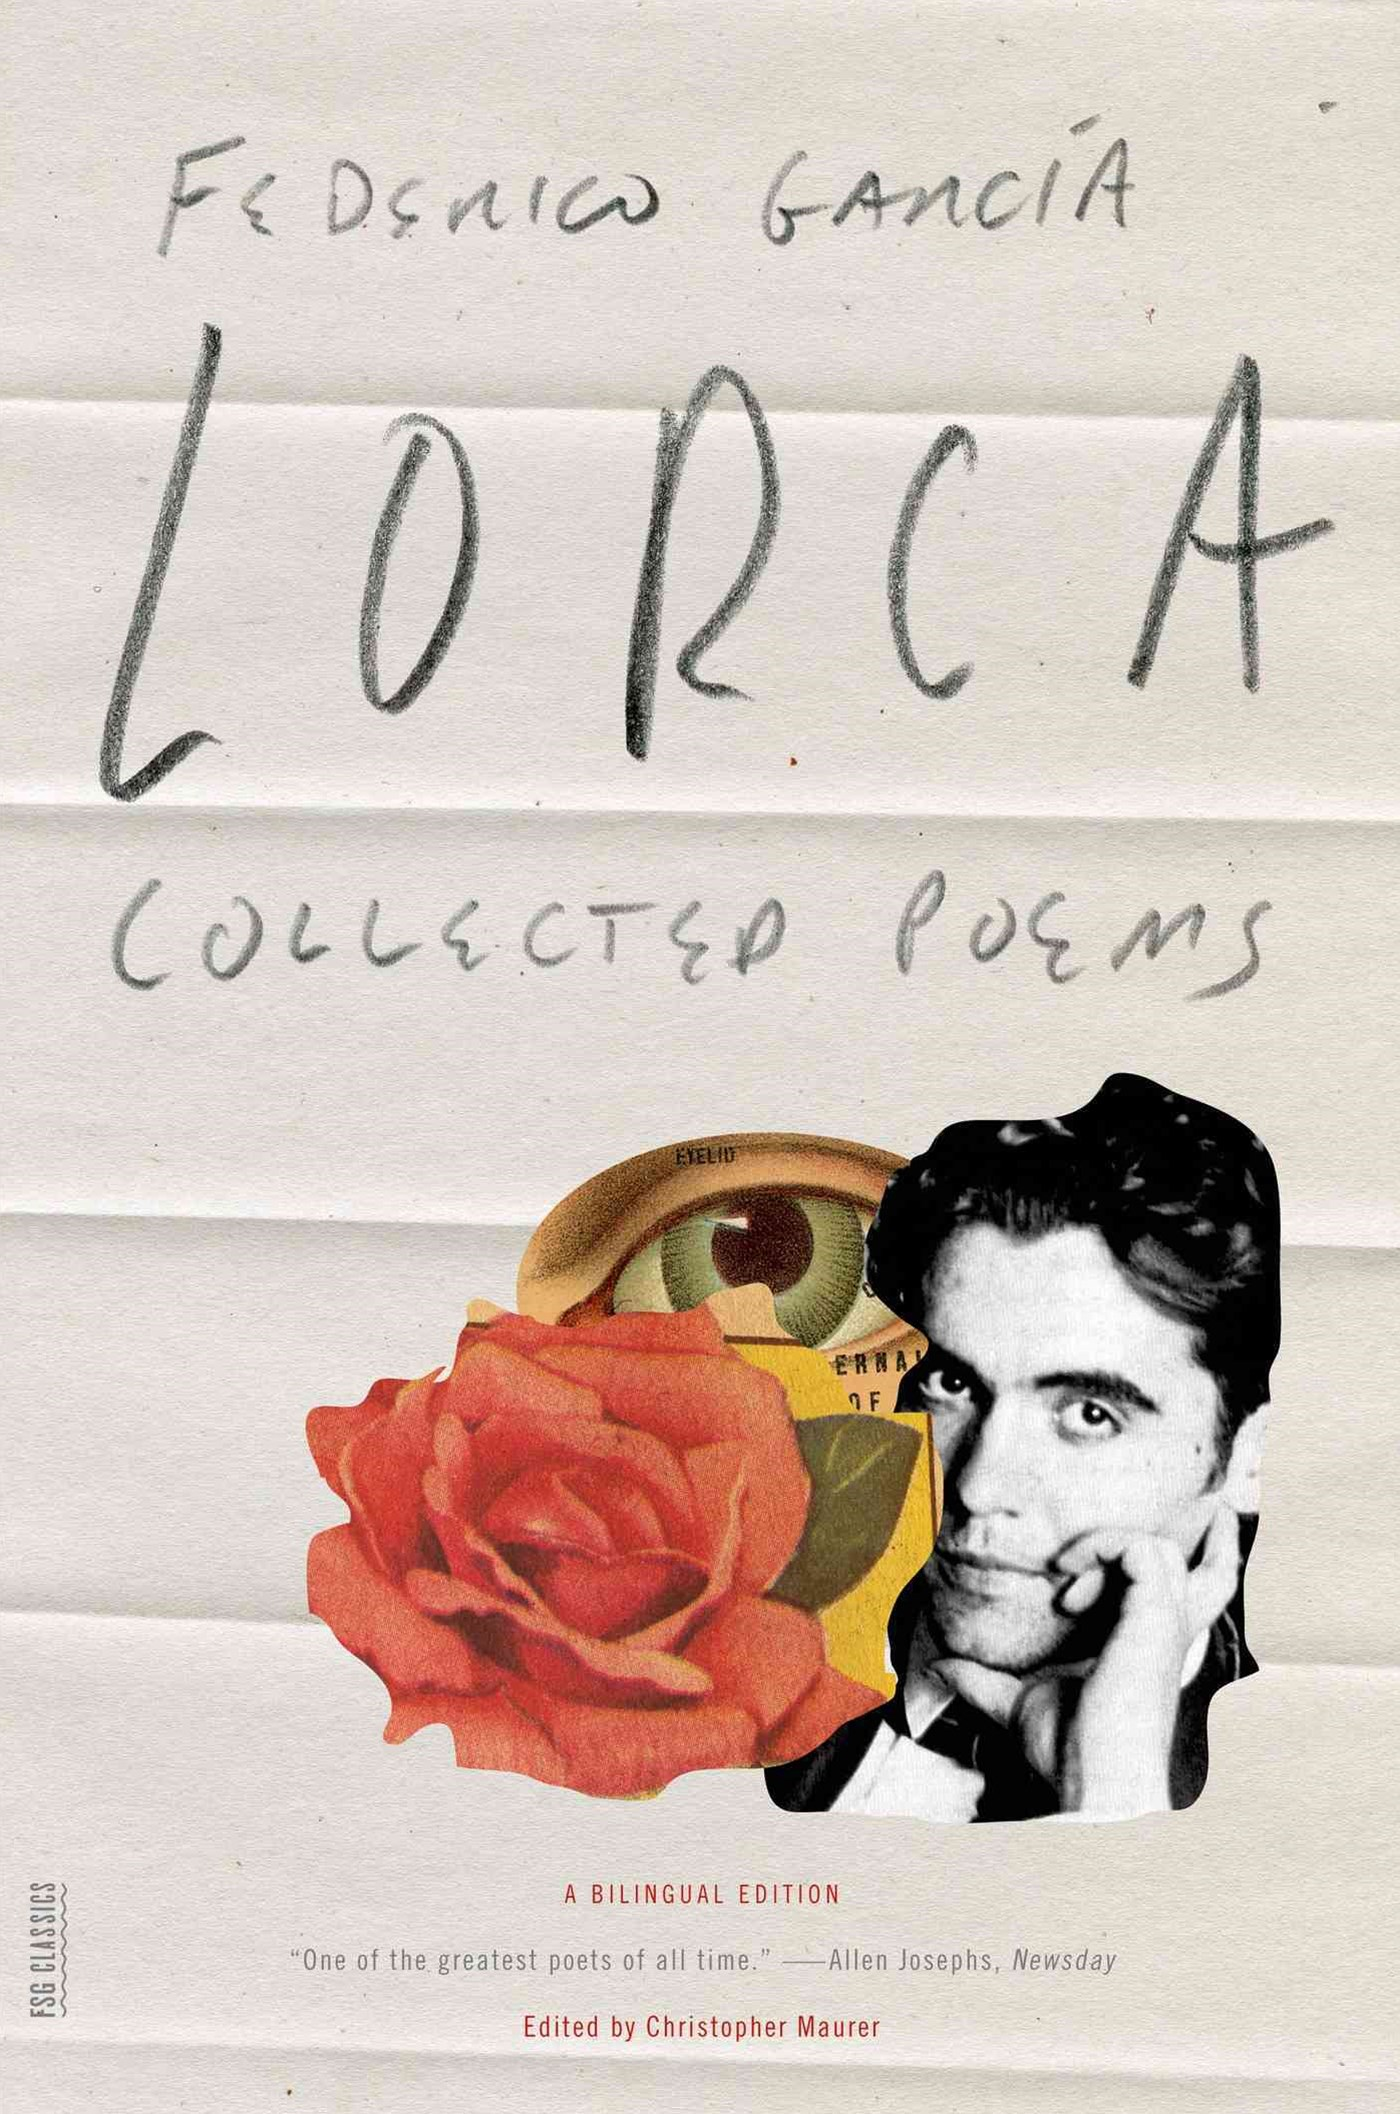 Federico Garcia Lorca - Collected Poems